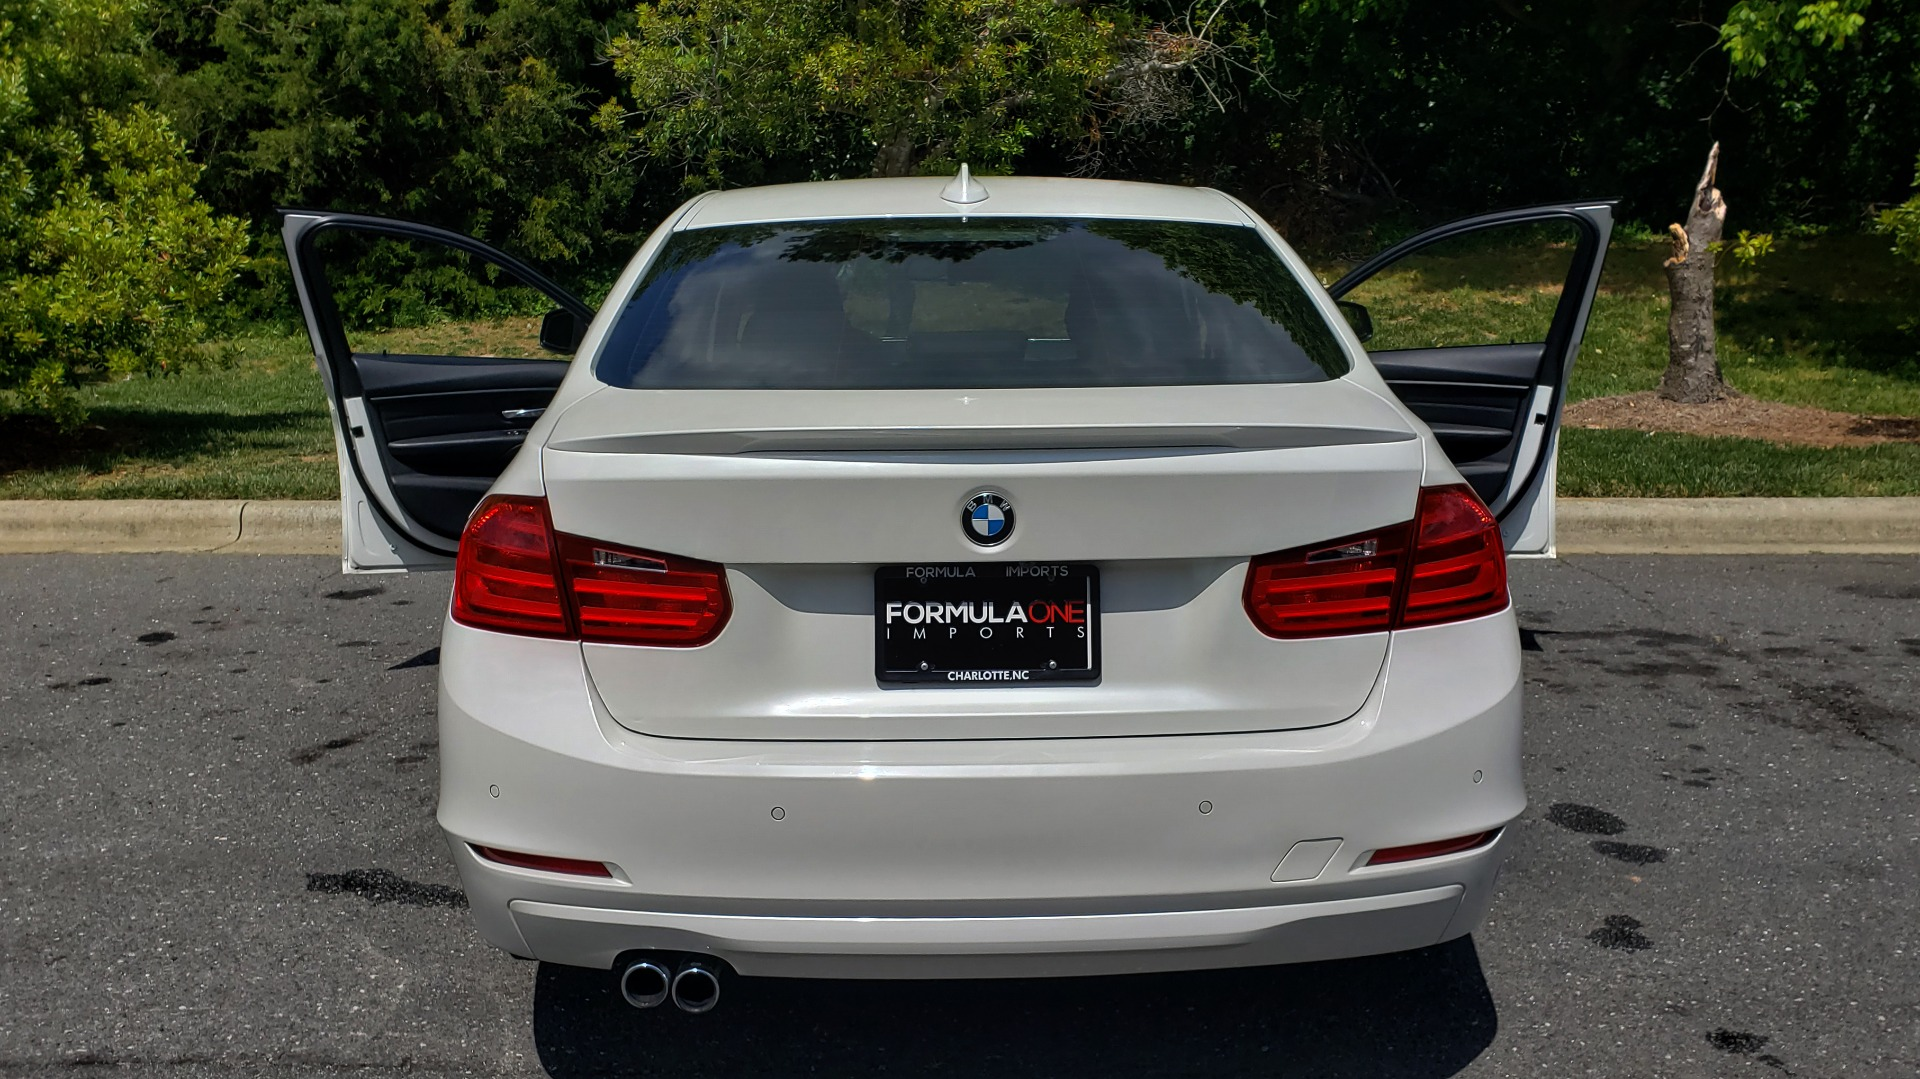 Used 2015 BMW 3 SERIES 328I PREMIUM / NAV / SUNROOF / HTD STS / DRIVER ASST / REARVIEW for sale Sold at Formula Imports in Charlotte NC 28227 25